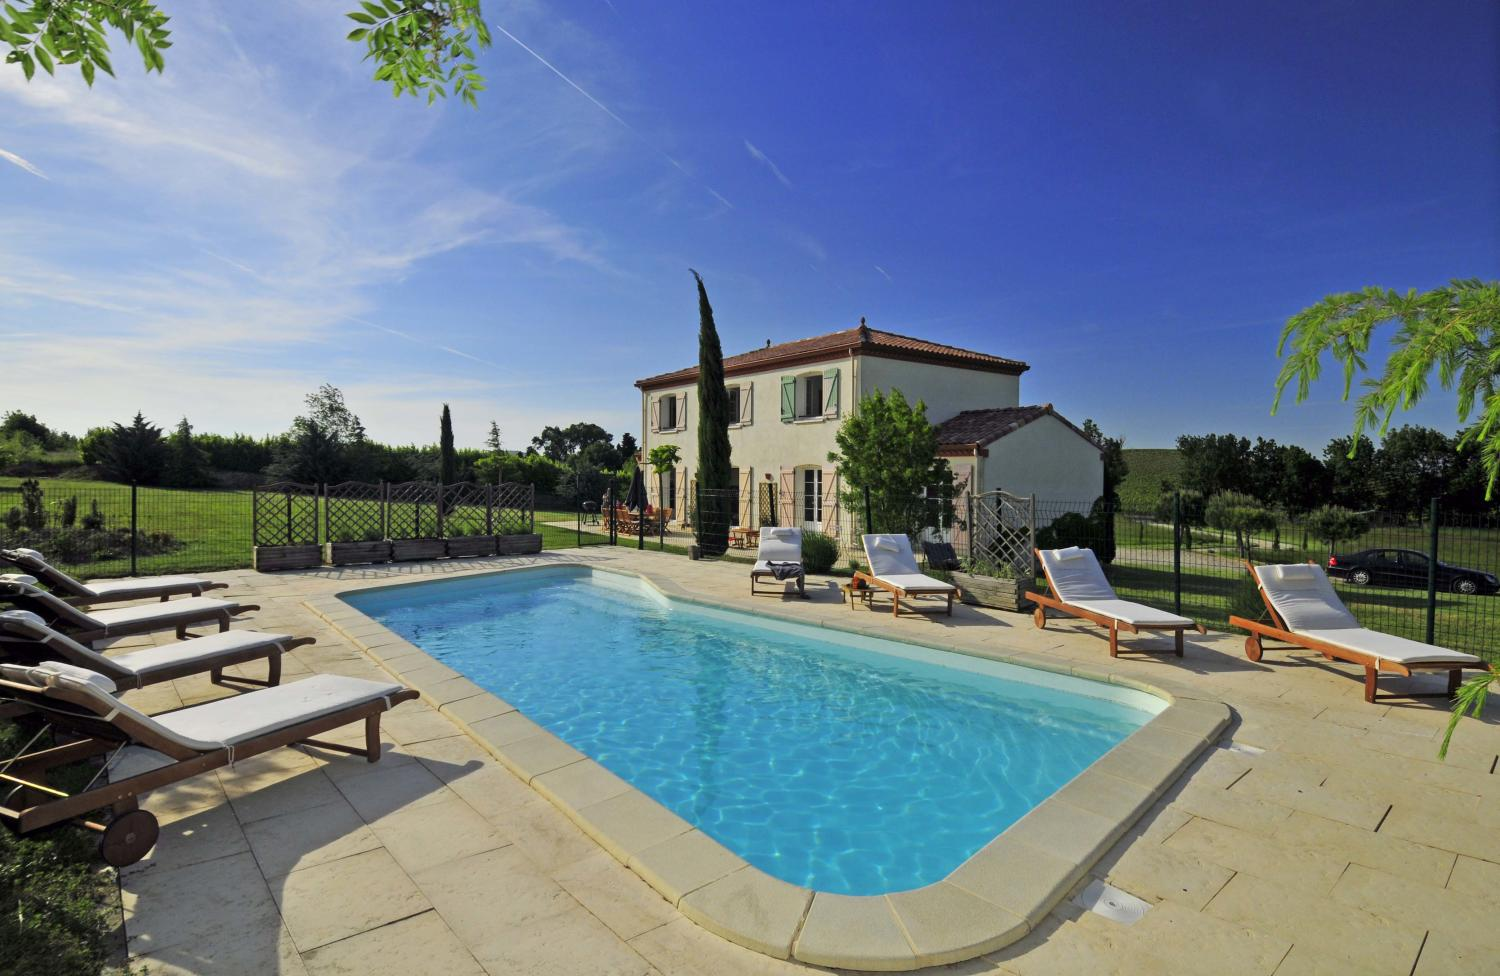 Outdoor Pool 1, L'Orbelle, Mirepoix, Languedoc.